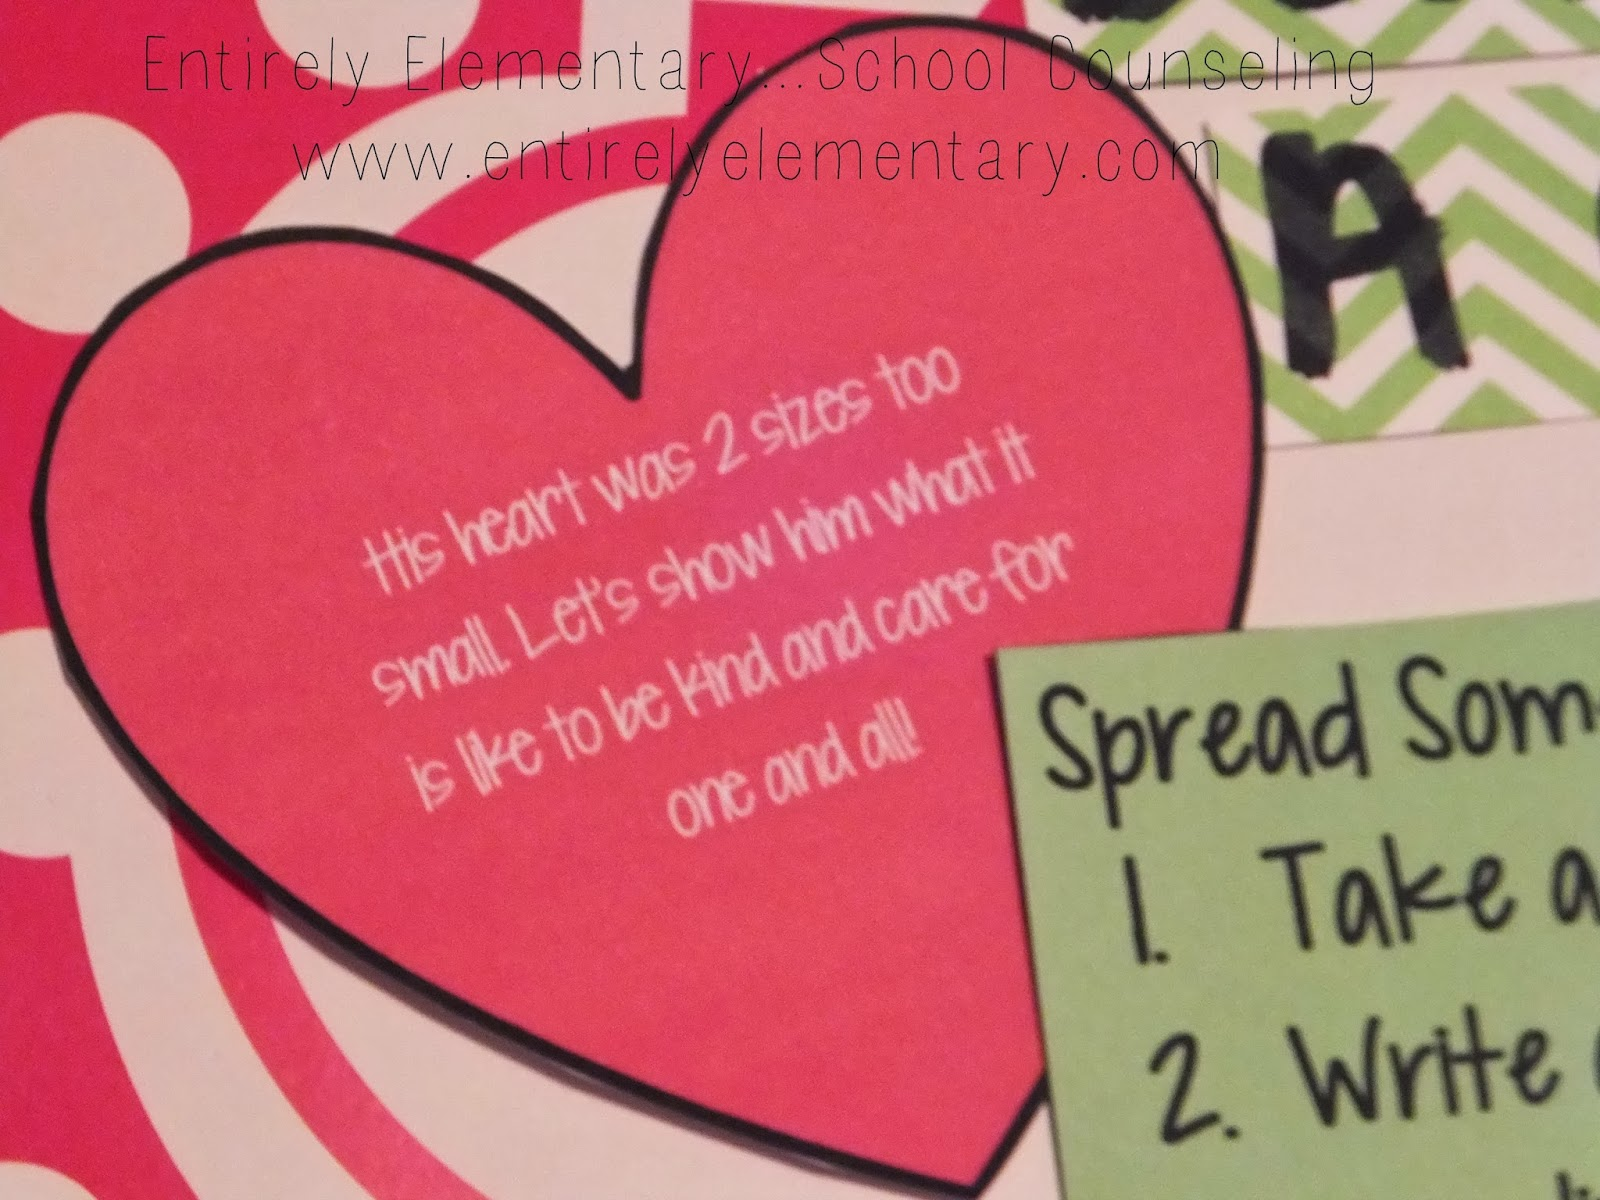 Entirely Elementary Hool Counseling Spread Kindness